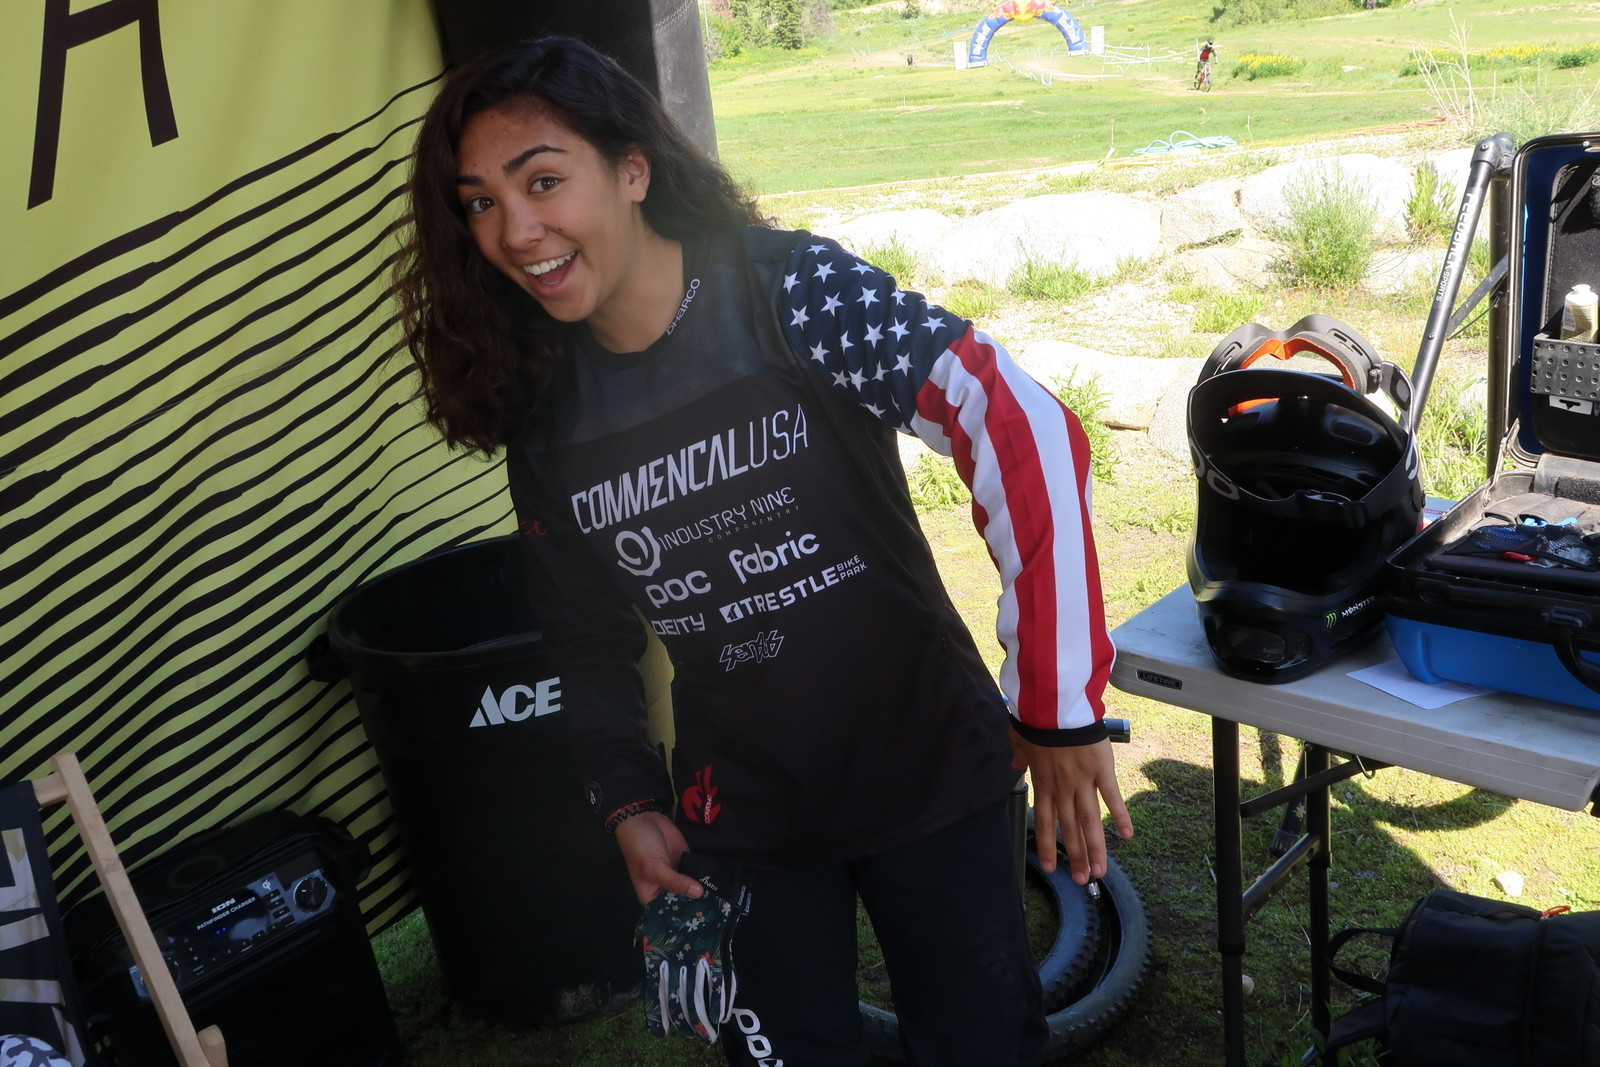 Sam Soriano and the National Champs Sleeve - PIT BITS - Tamarack Pro GRT / NW Cup - Mountain Biking Pictures - Vital MTB